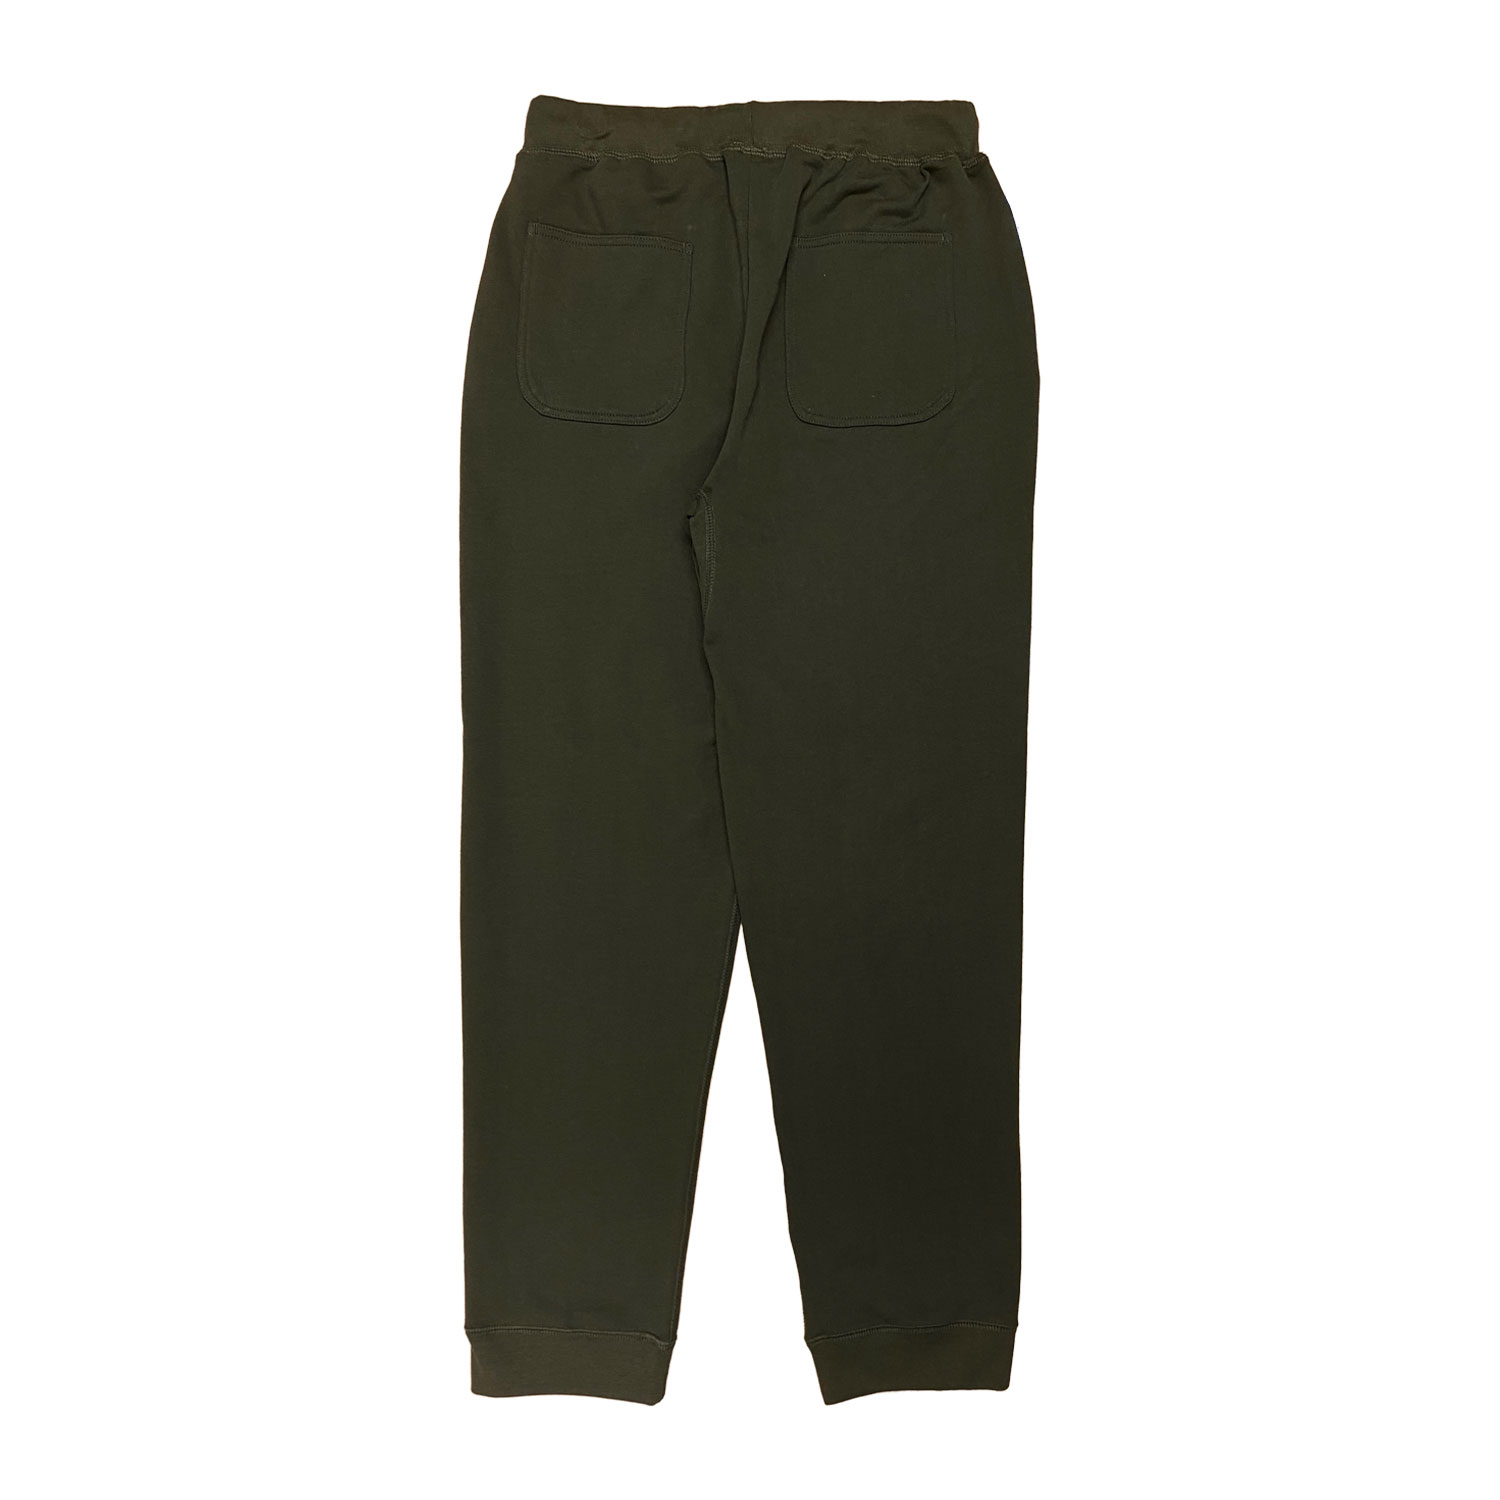 F/B POOPING SWEAT PANTS - PIED